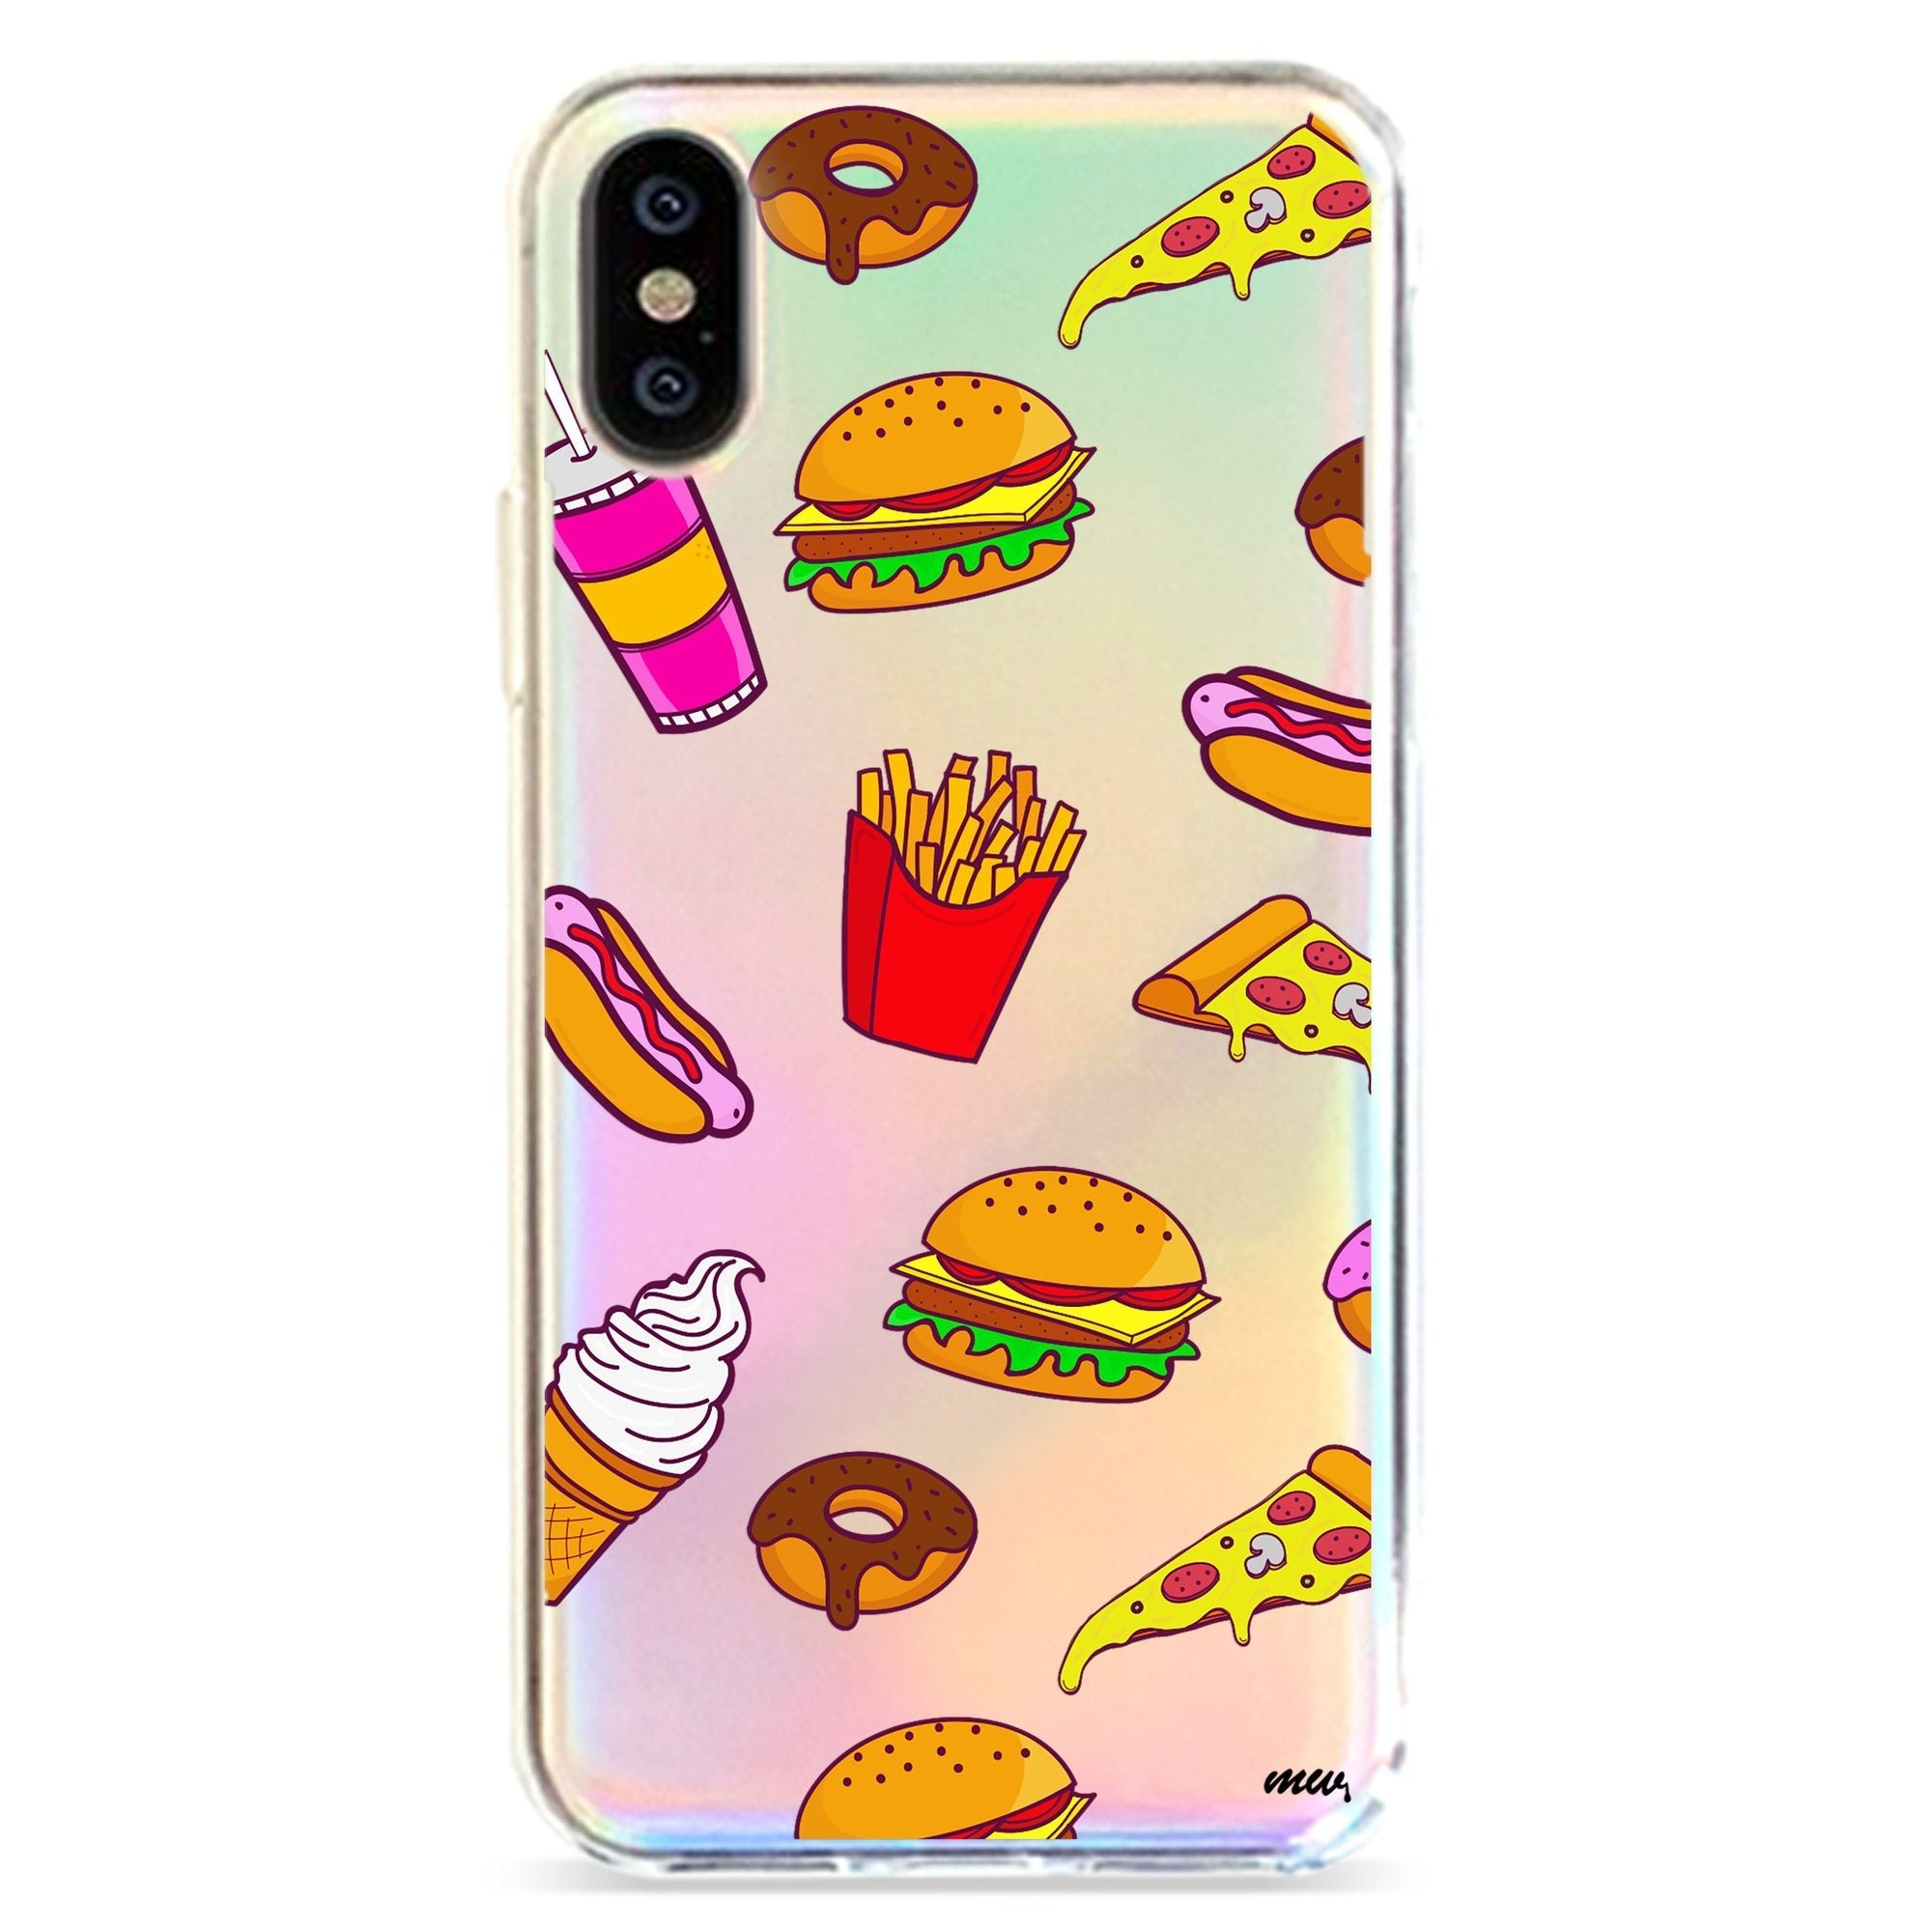 FAST FOOD - HOLOGRAPHIC IPHONE CASE